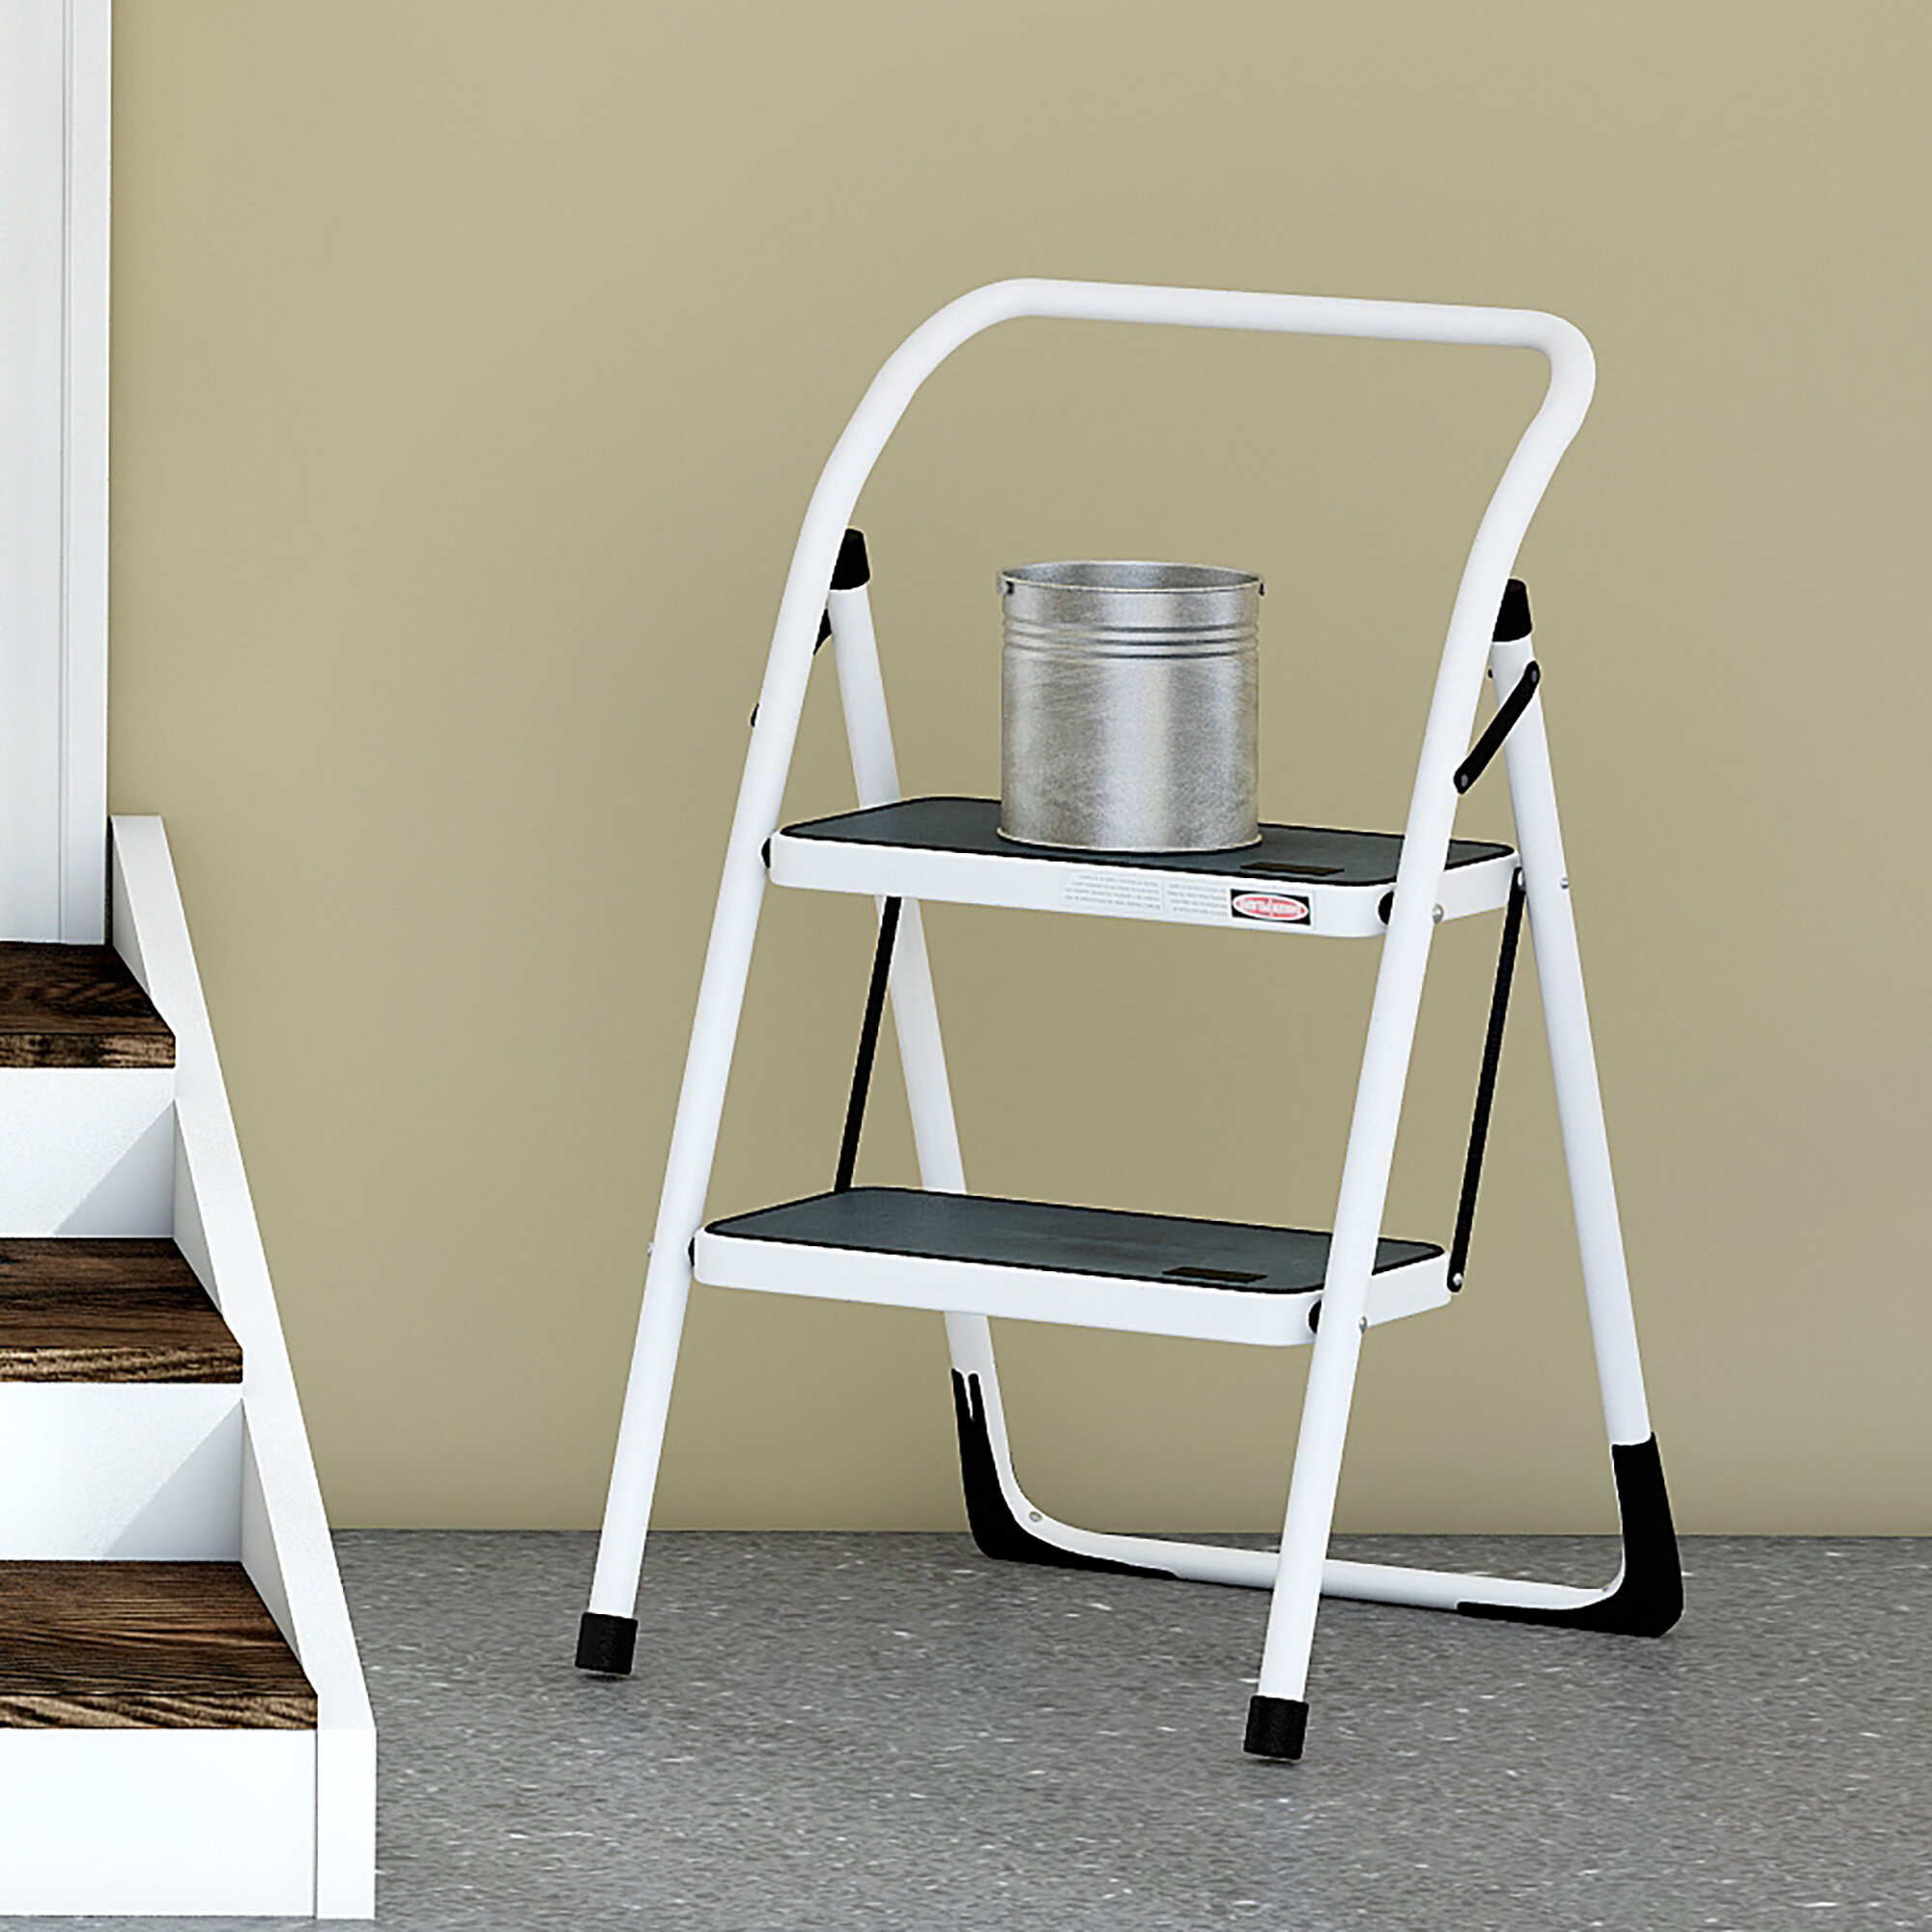 Peachy Wayfair Basics 2 Step Steel Step Stool With 300 Lb Load Capacity Pabps2019 Chair Design Images Pabps2019Com